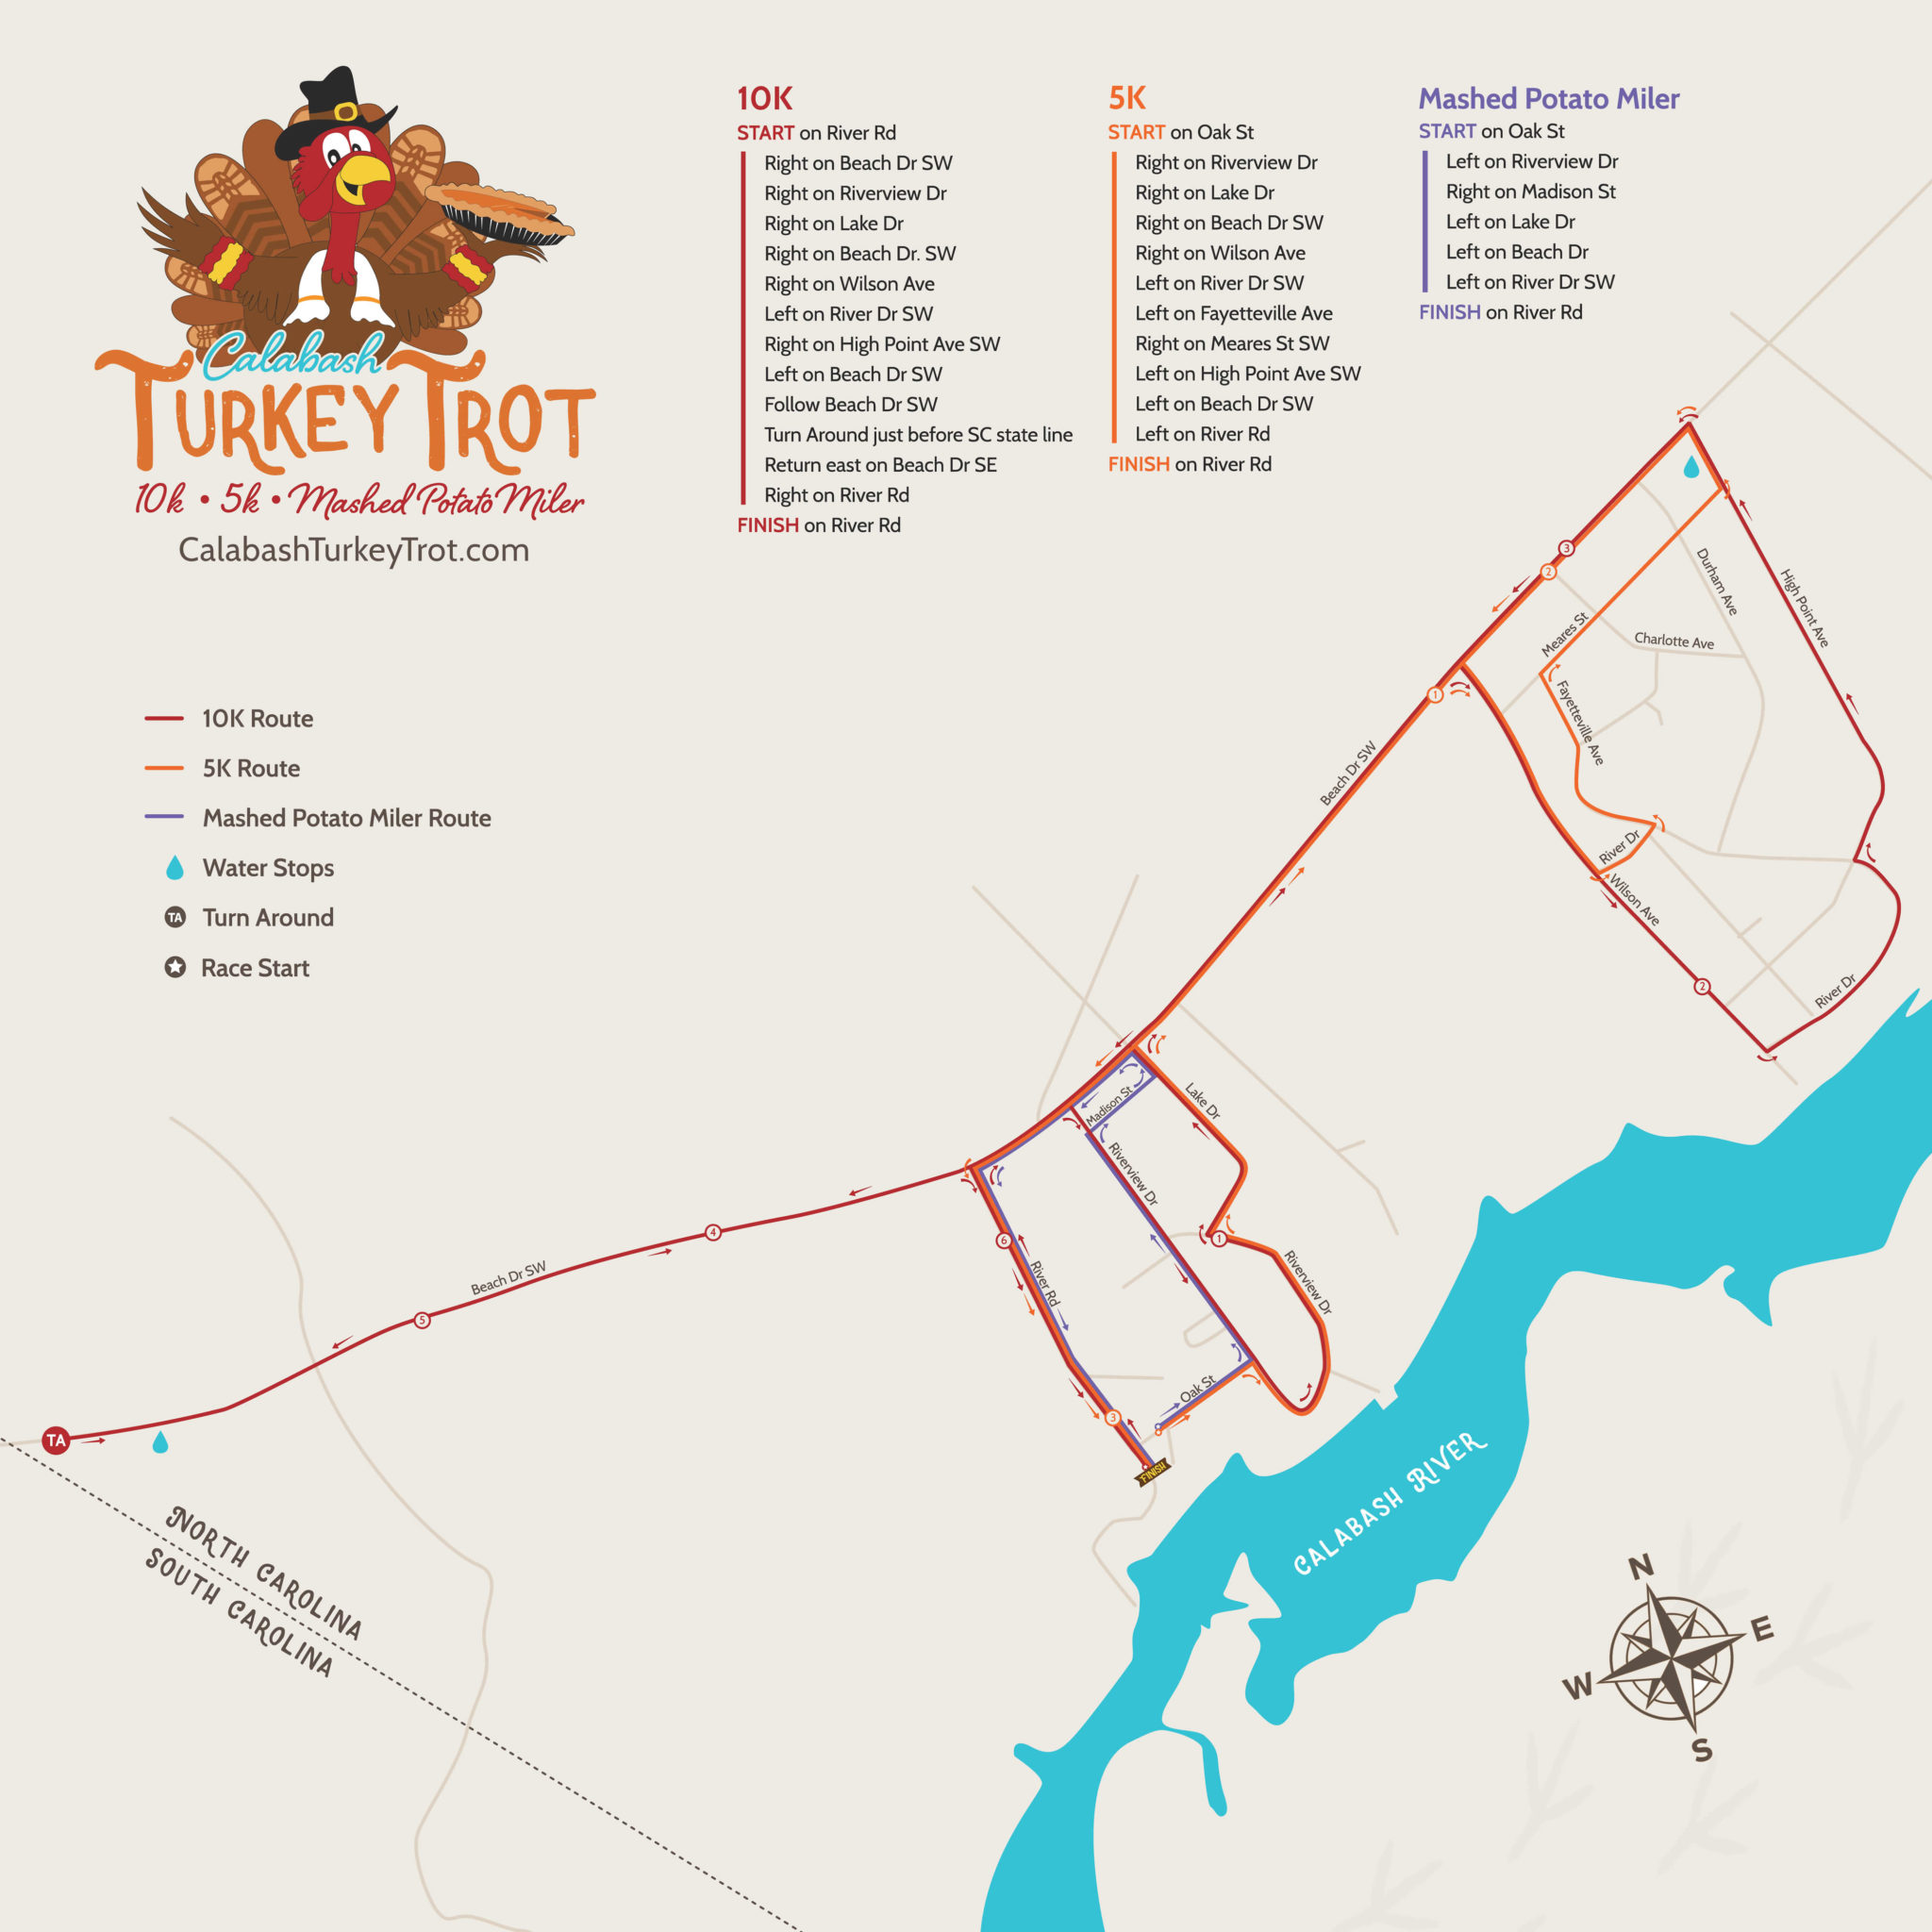 Calabash Turkey Trot Coastal Race Productions